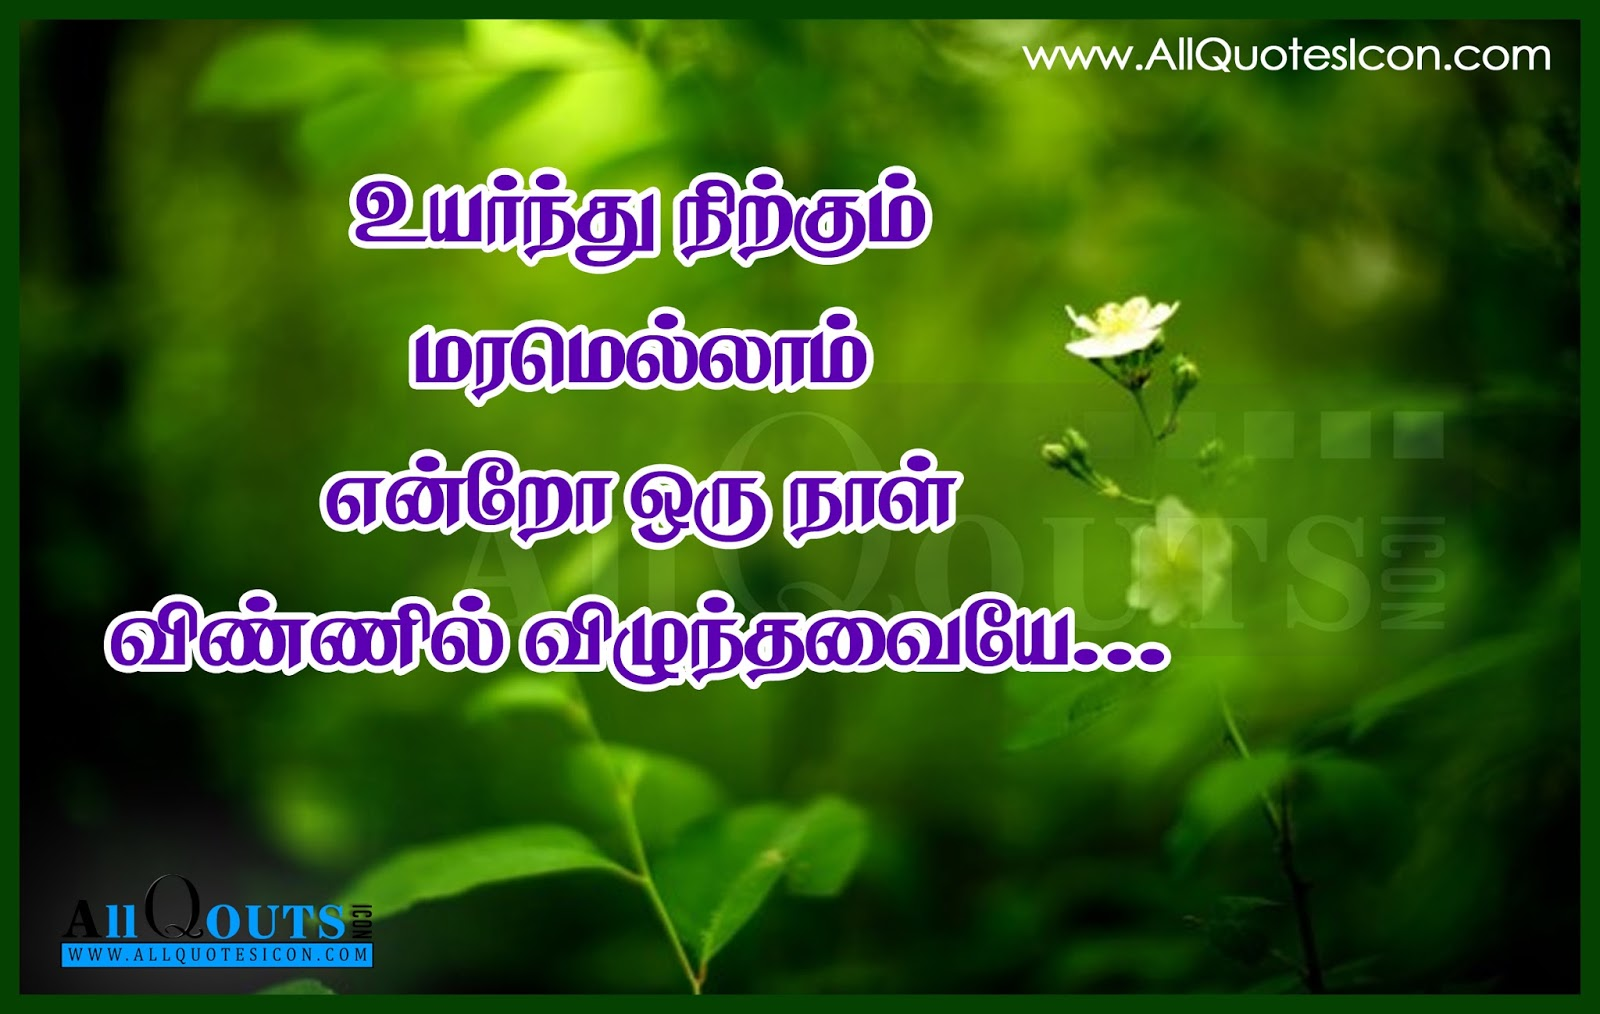 Beautiful Life Quotes With Images In Tamil Labzada Wallpaper